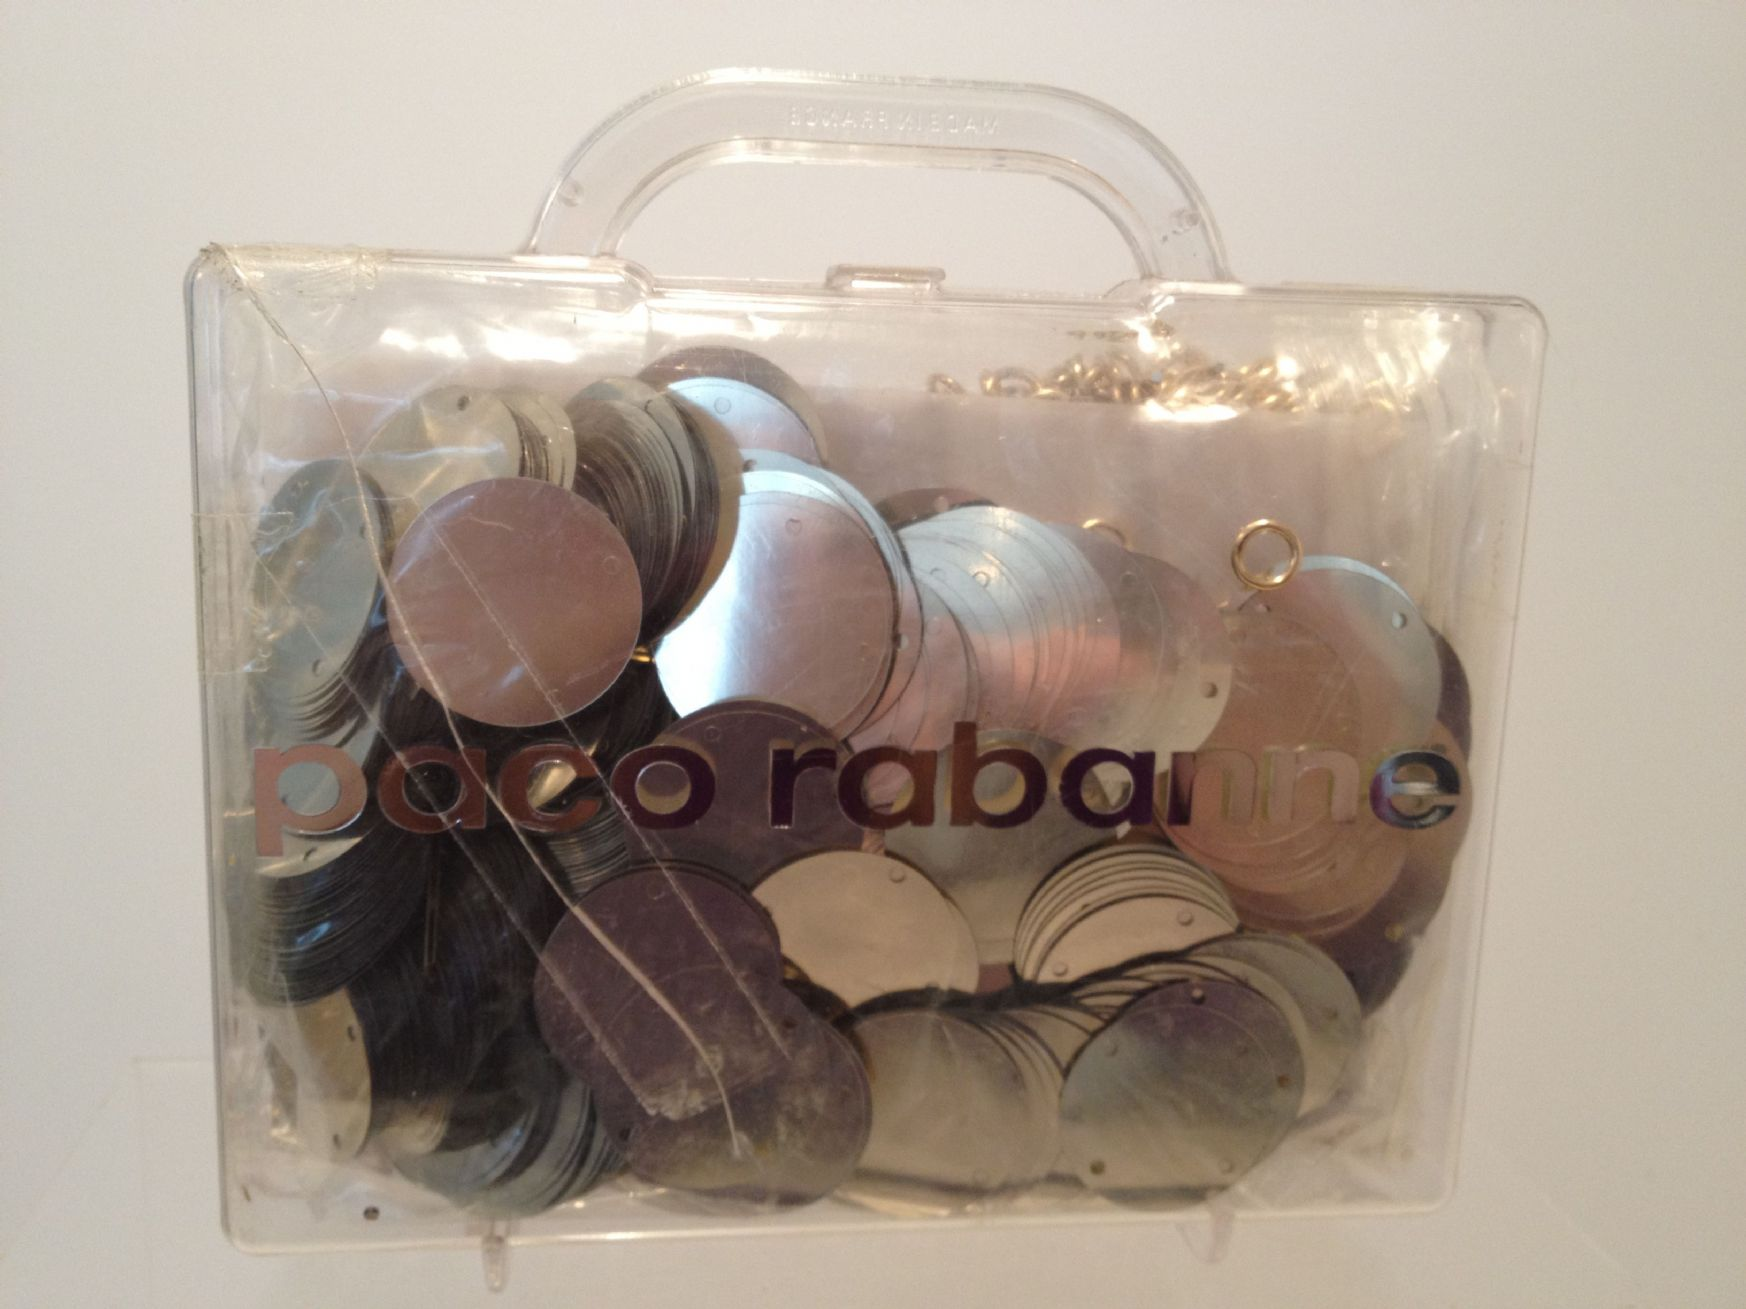 Paco rabanne do it yourself rhodoid plastic disc dress kit in paco rabanne do it yourself rhodoid plastic disc dress kit in plastic case sold solutioingenieria Image collections